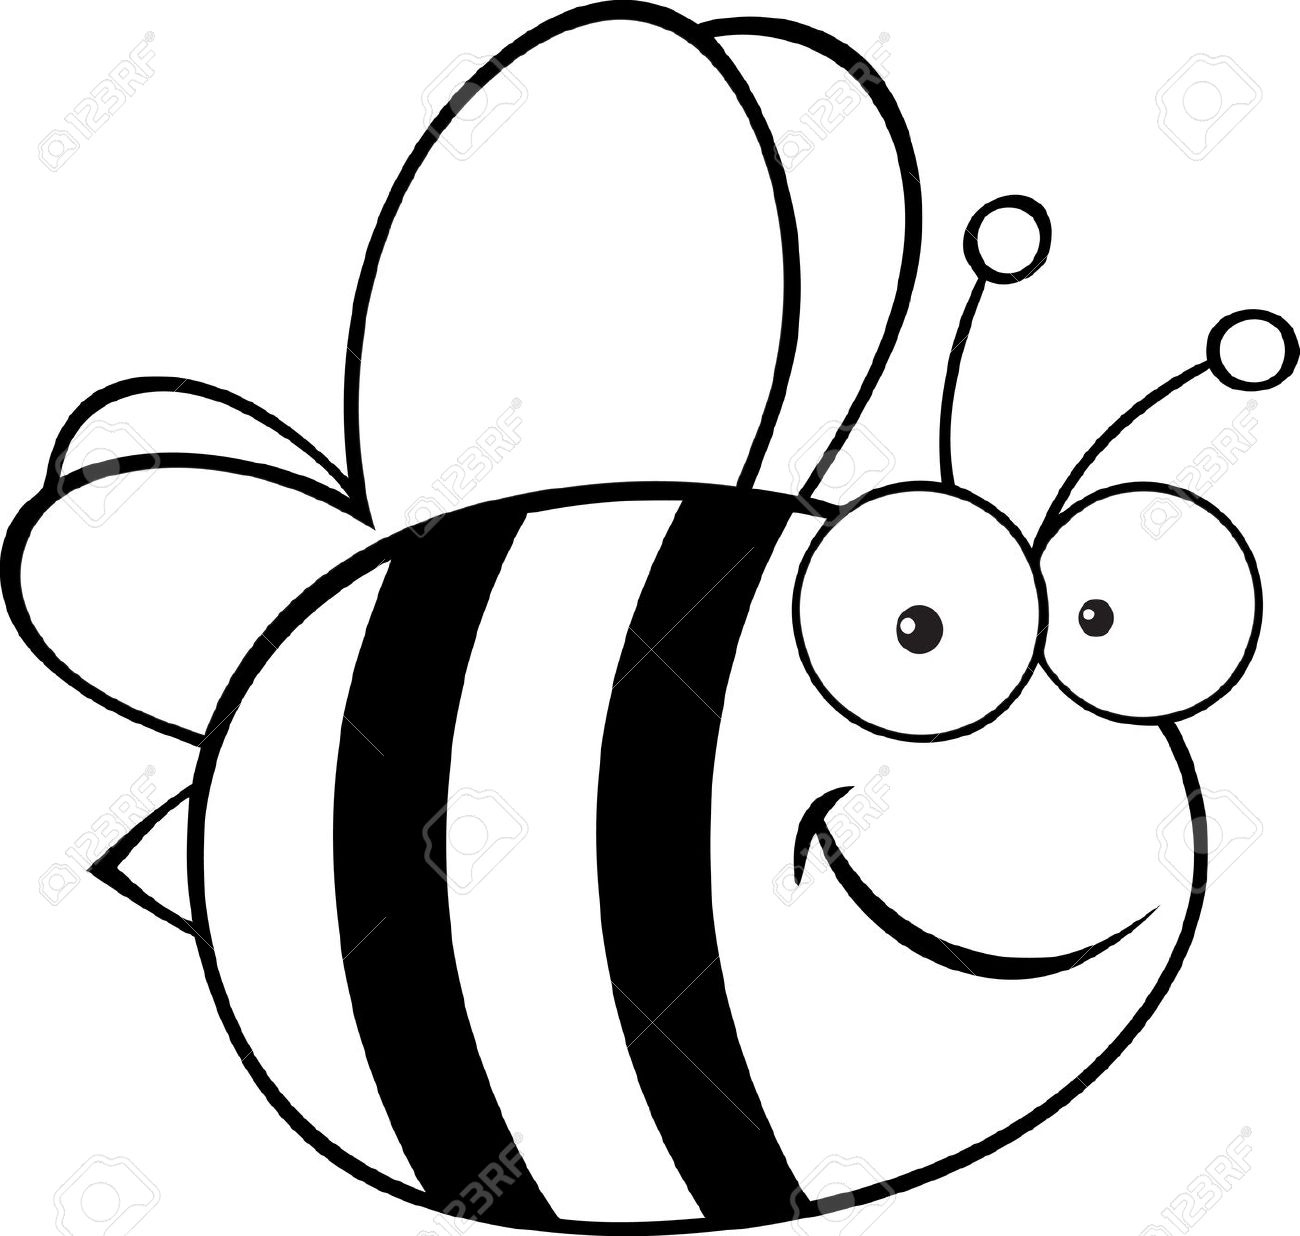 Cute bee solnet sy. Bees clipart black and white